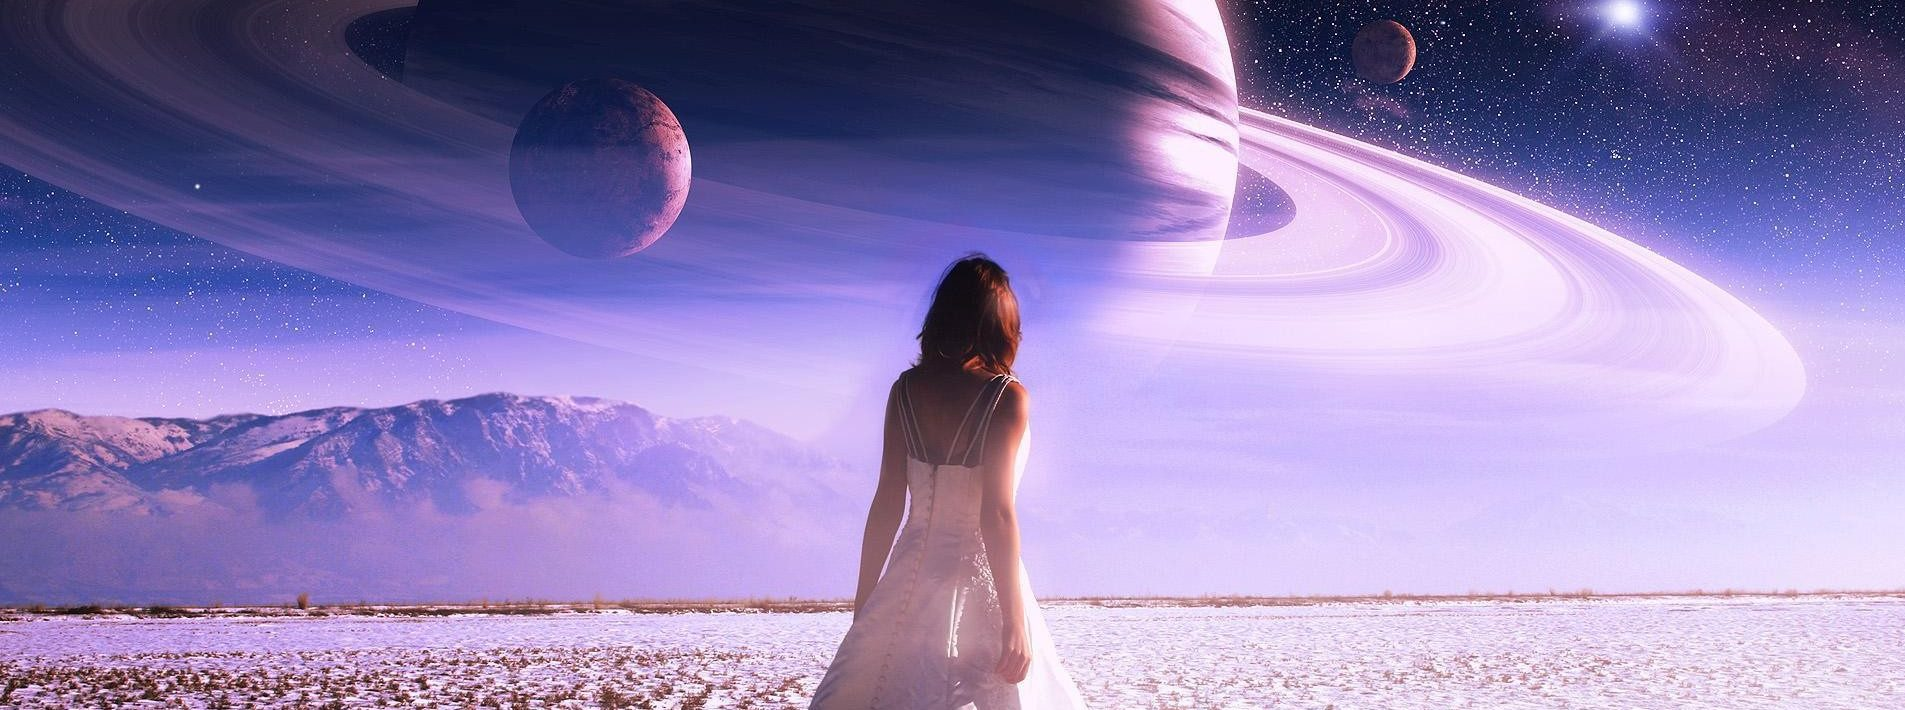 fantasy_a_girl_in_a_white_dress_looks_at_saturn_103243_